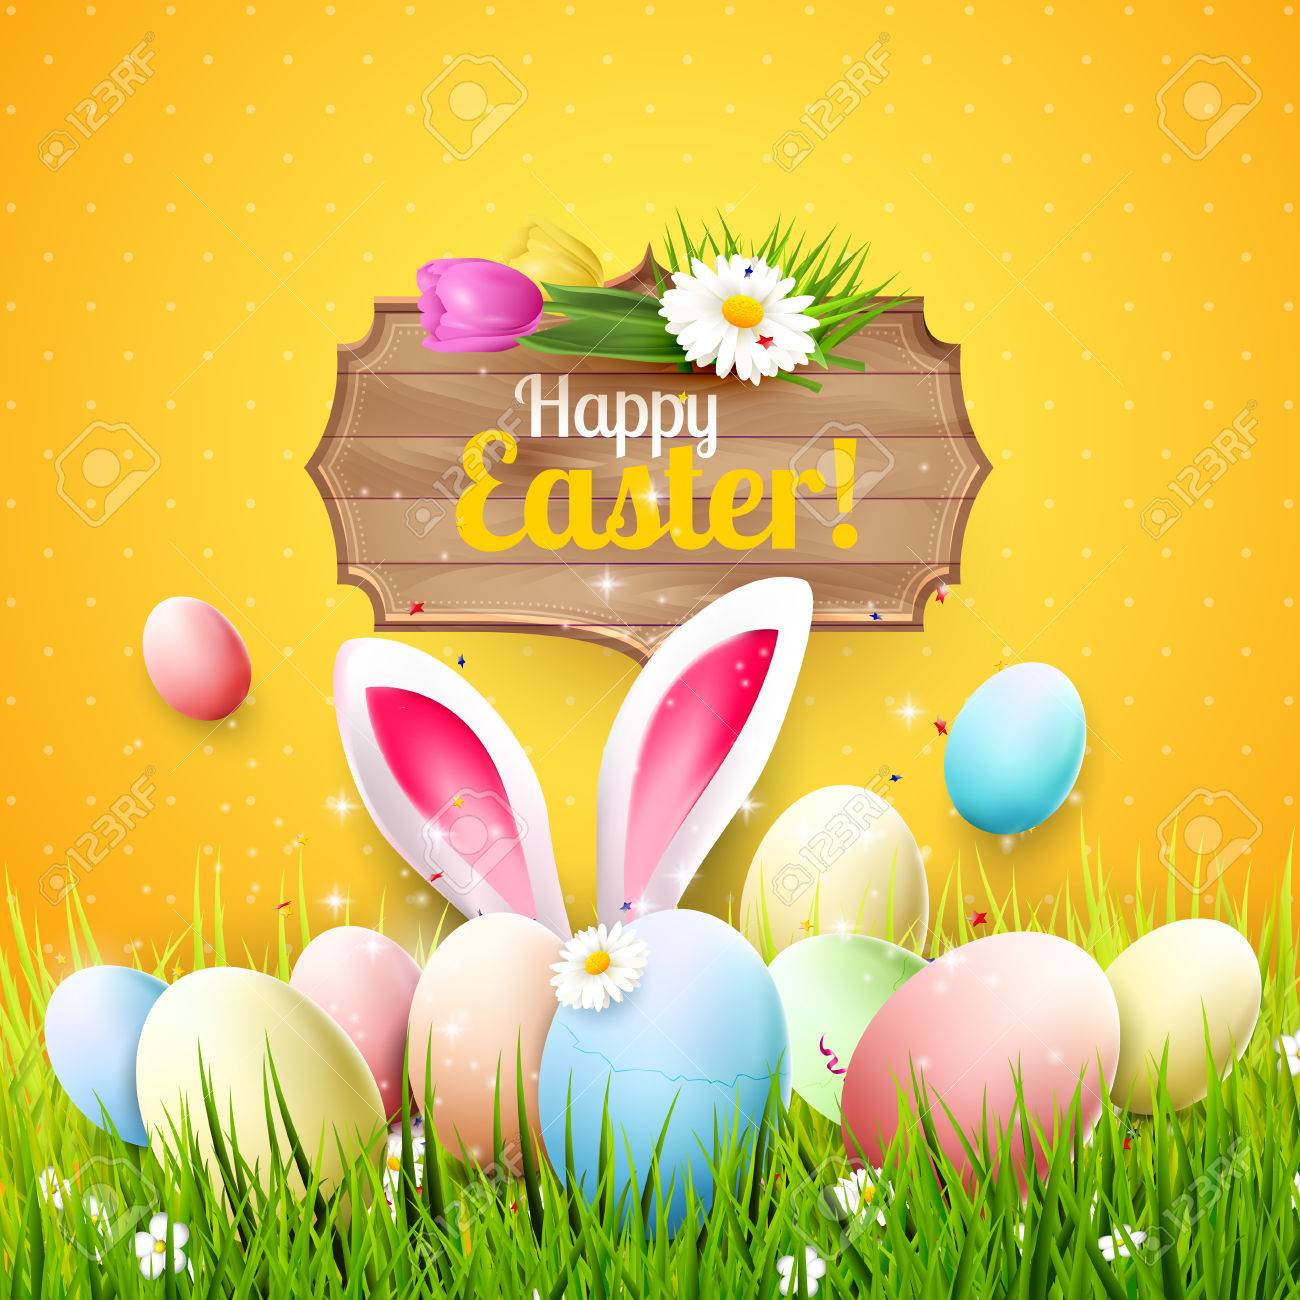 Easter greeting card with colorful eggs bunny ears and wooden easter greeting card with colorful eggs bunny ears and wooden sign on orange background stock m4hsunfo